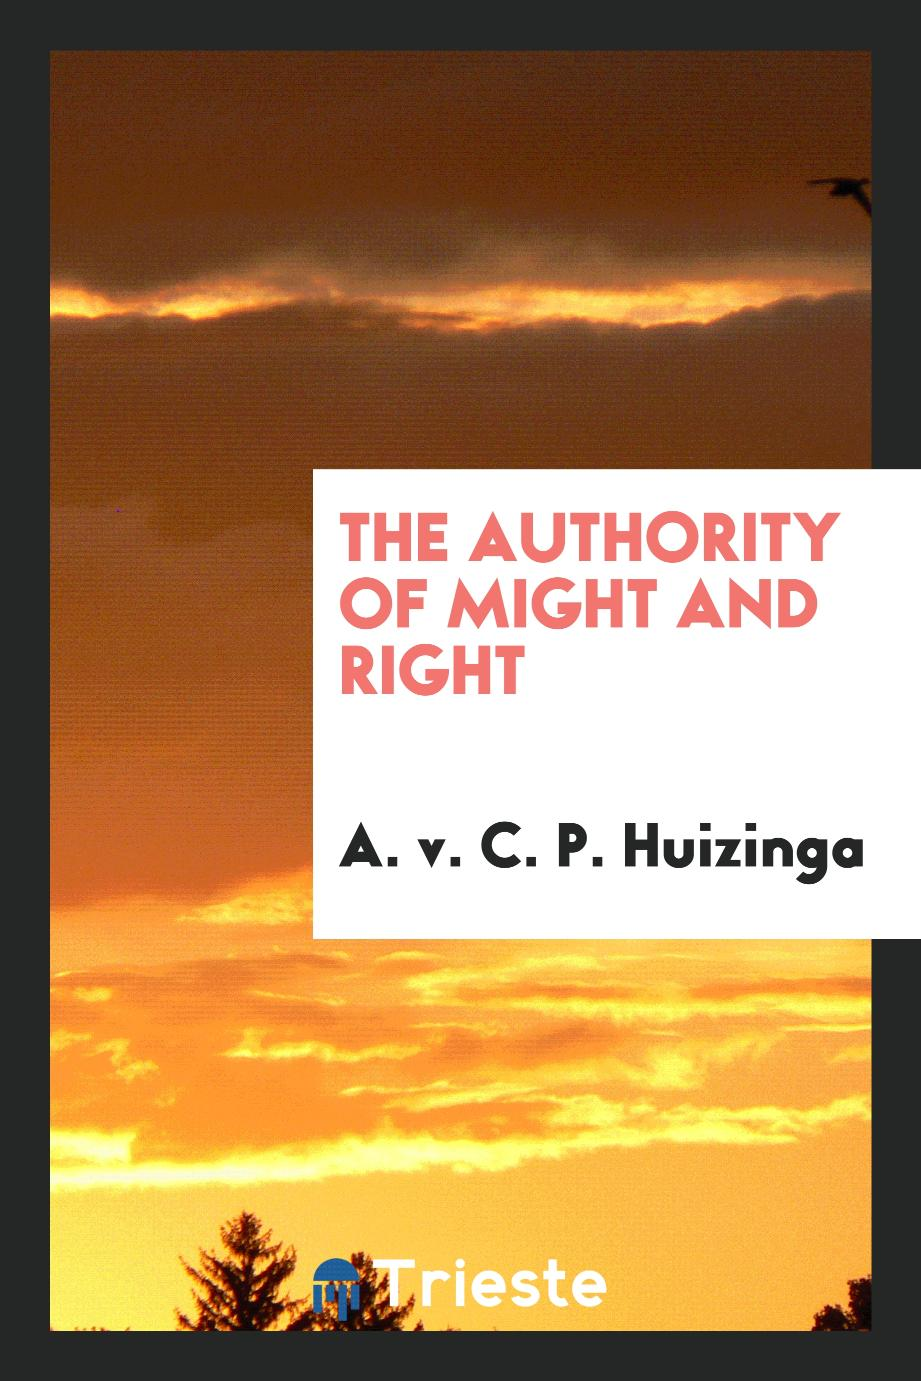 The authority of might and right